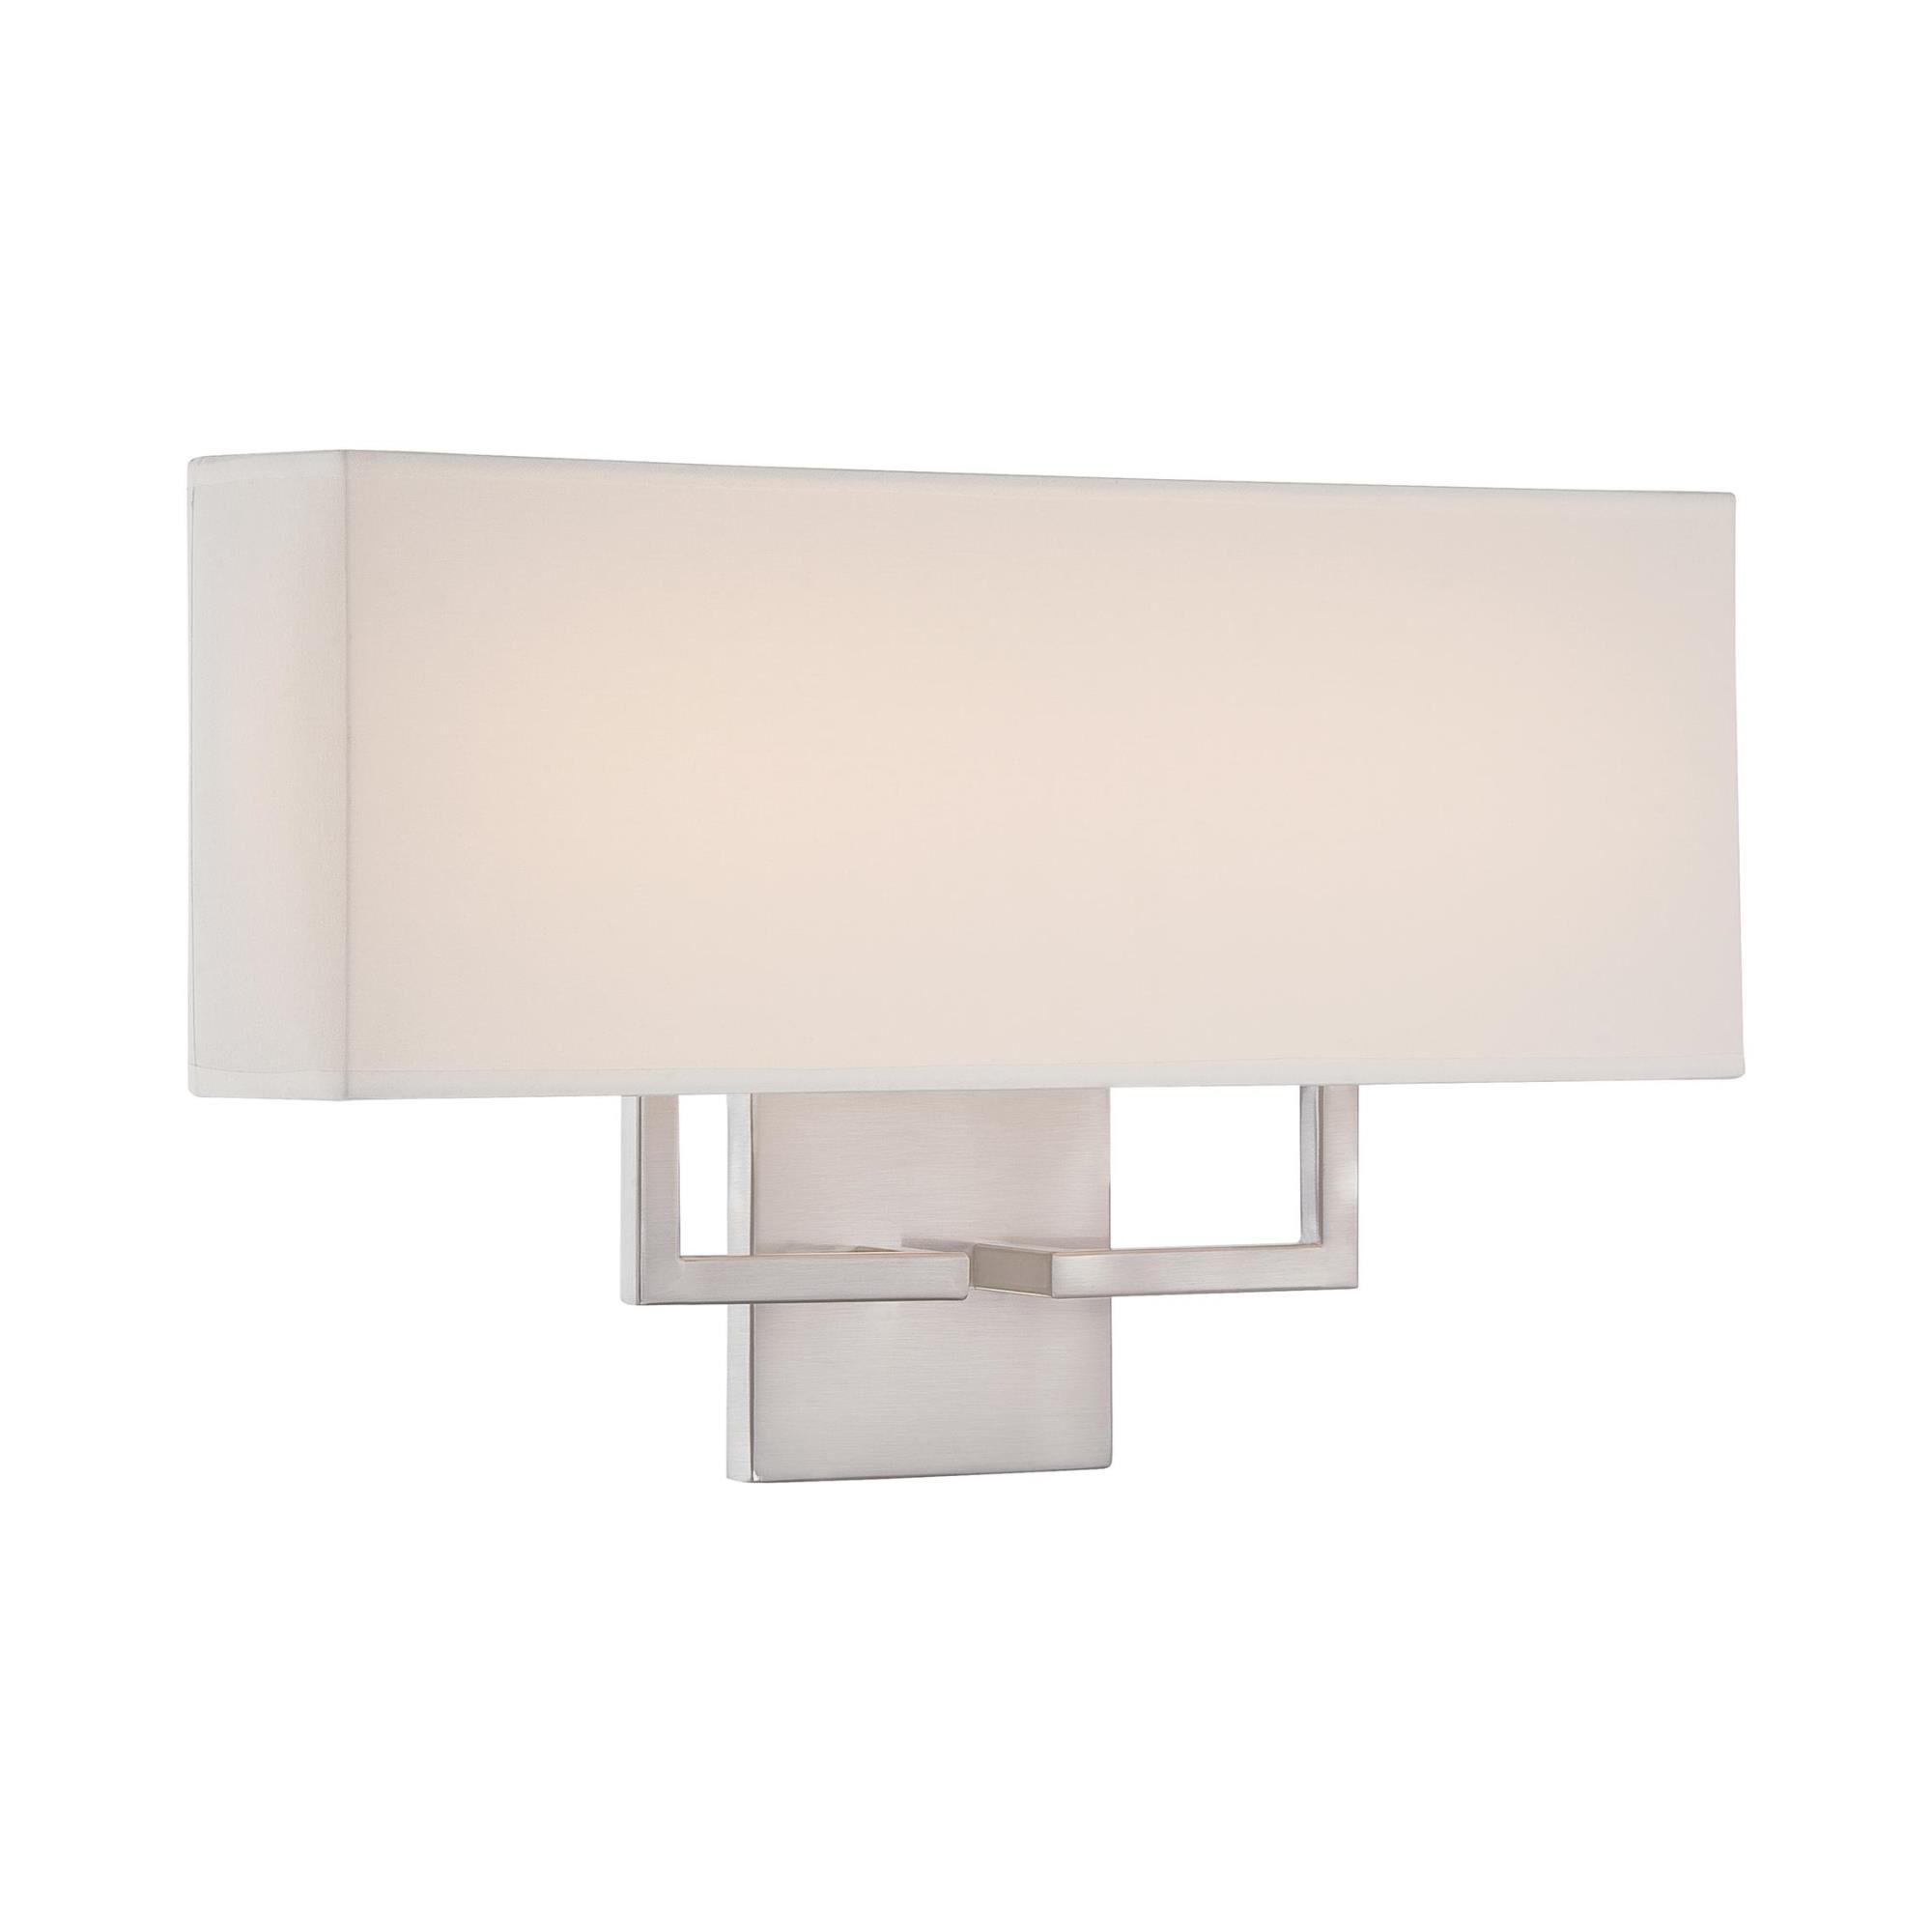 Kovacs 16 Inch Wall Sconce - P472-084-l - Transitional